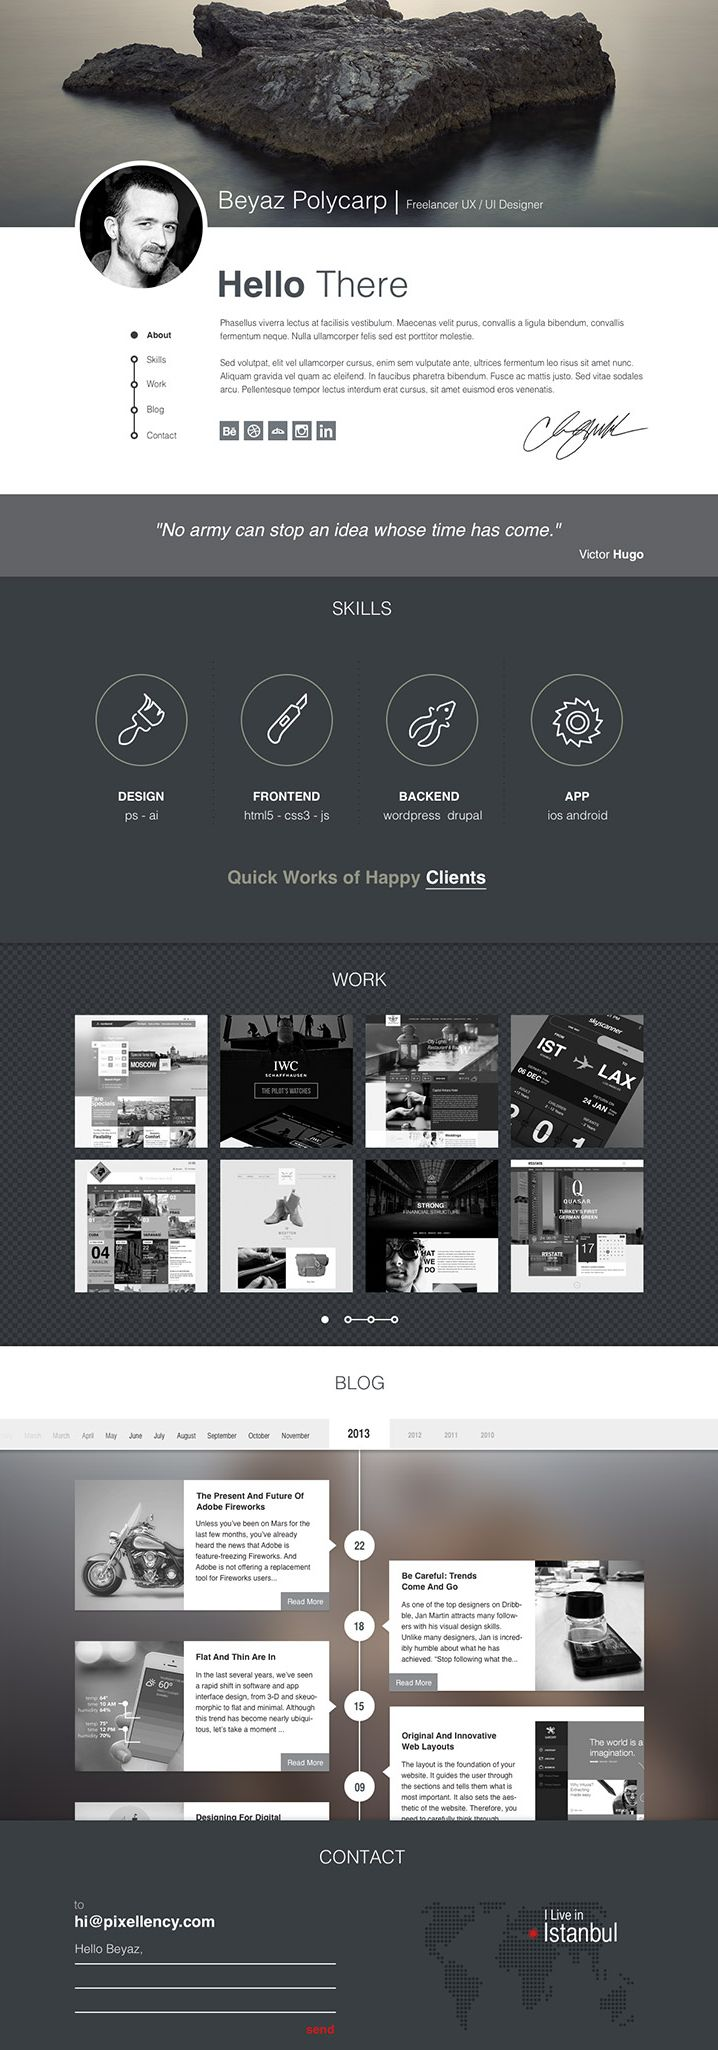 Polifoli - Free Portfolio Website Template